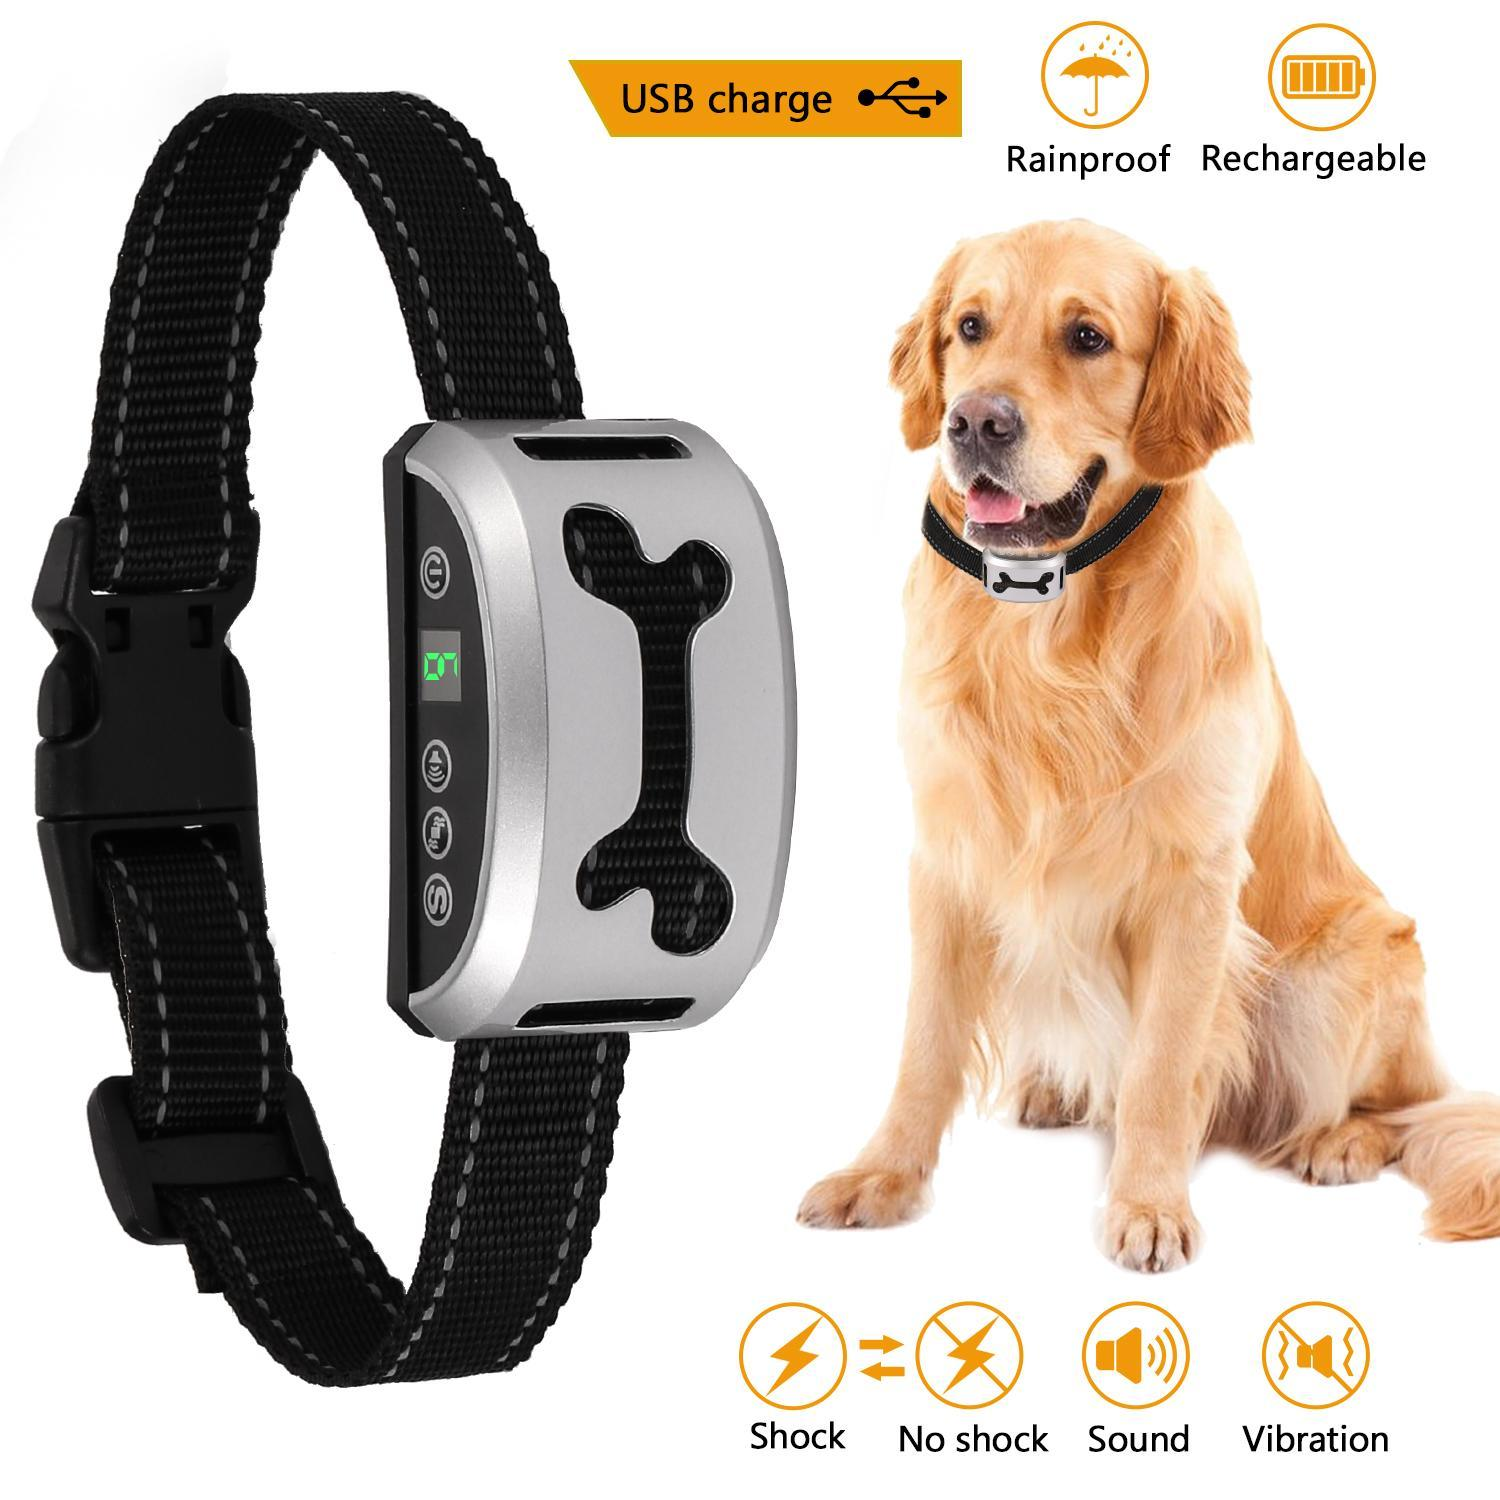 2019 The Newest! Pet Collar Vibration or Shock Barking Control Training Collar with 7 Adjustable Sensitivity Control for Dogs HFON